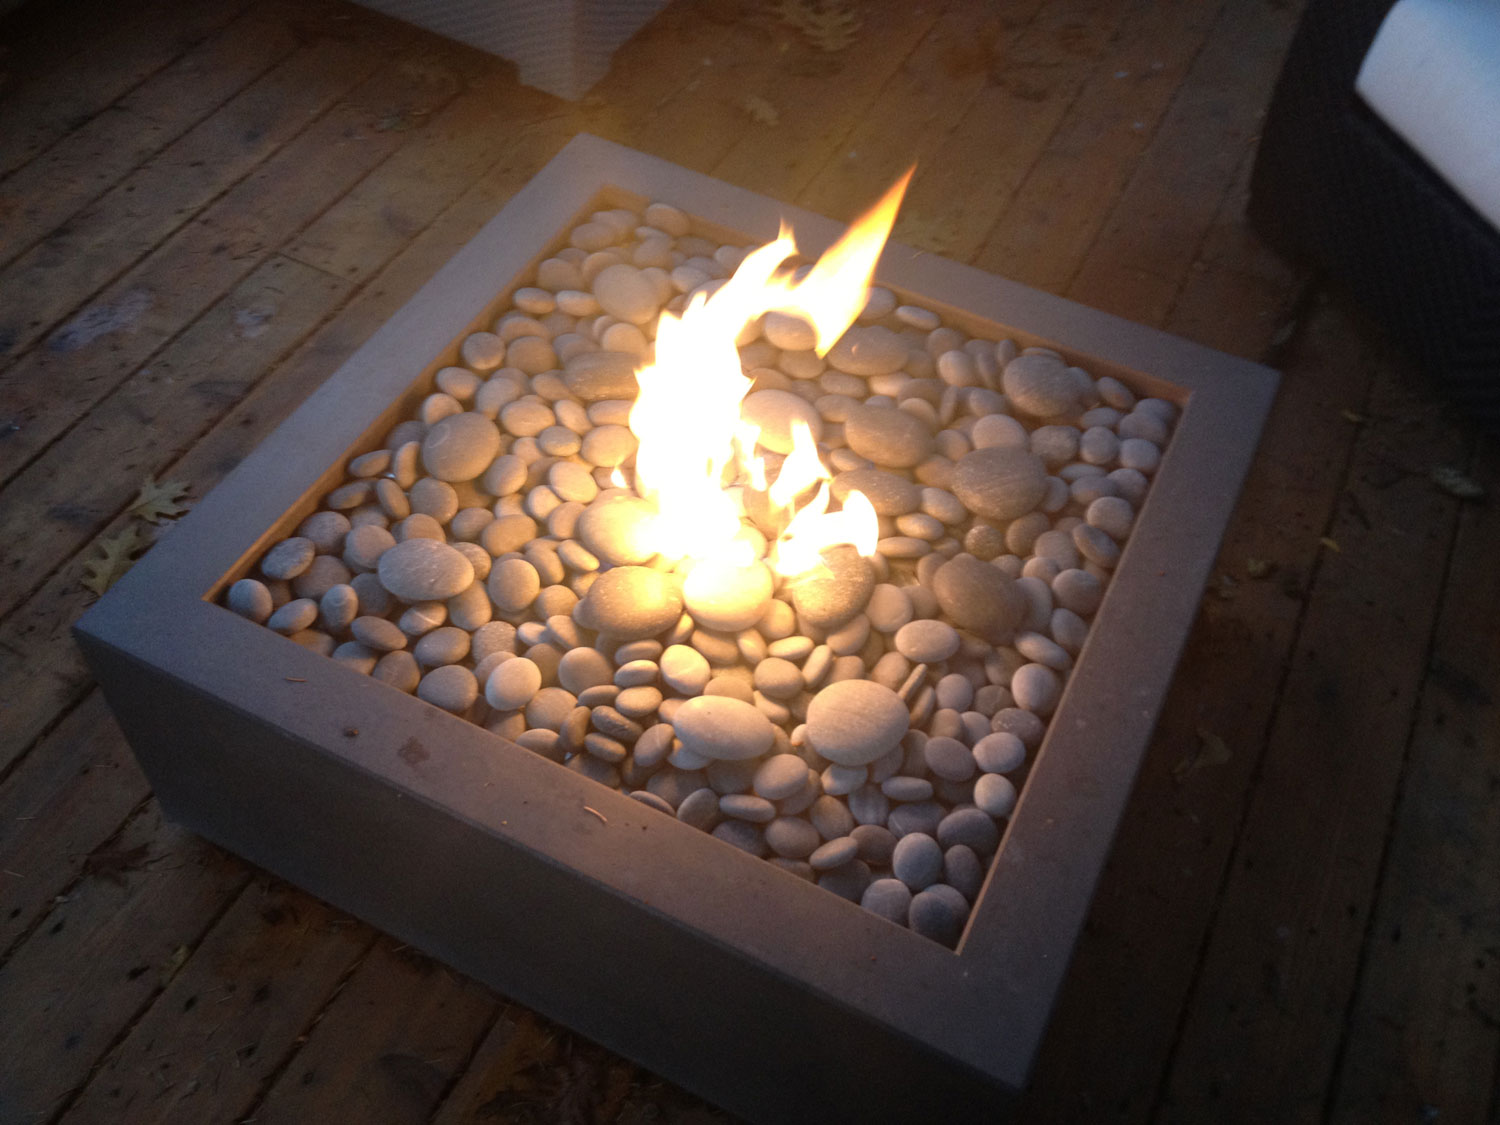 Concrete fire pits-Broward Custom Concrete Solutions-We offer custom concrete solutions including Polished concrete, Stained concrete, Epoxy Floor, Sealed concrete, Stamped concrete, Concrete overlay, Concrete countertops, Concrete summer kitchens, Driveway repairs, Concrete pool water falls, and more